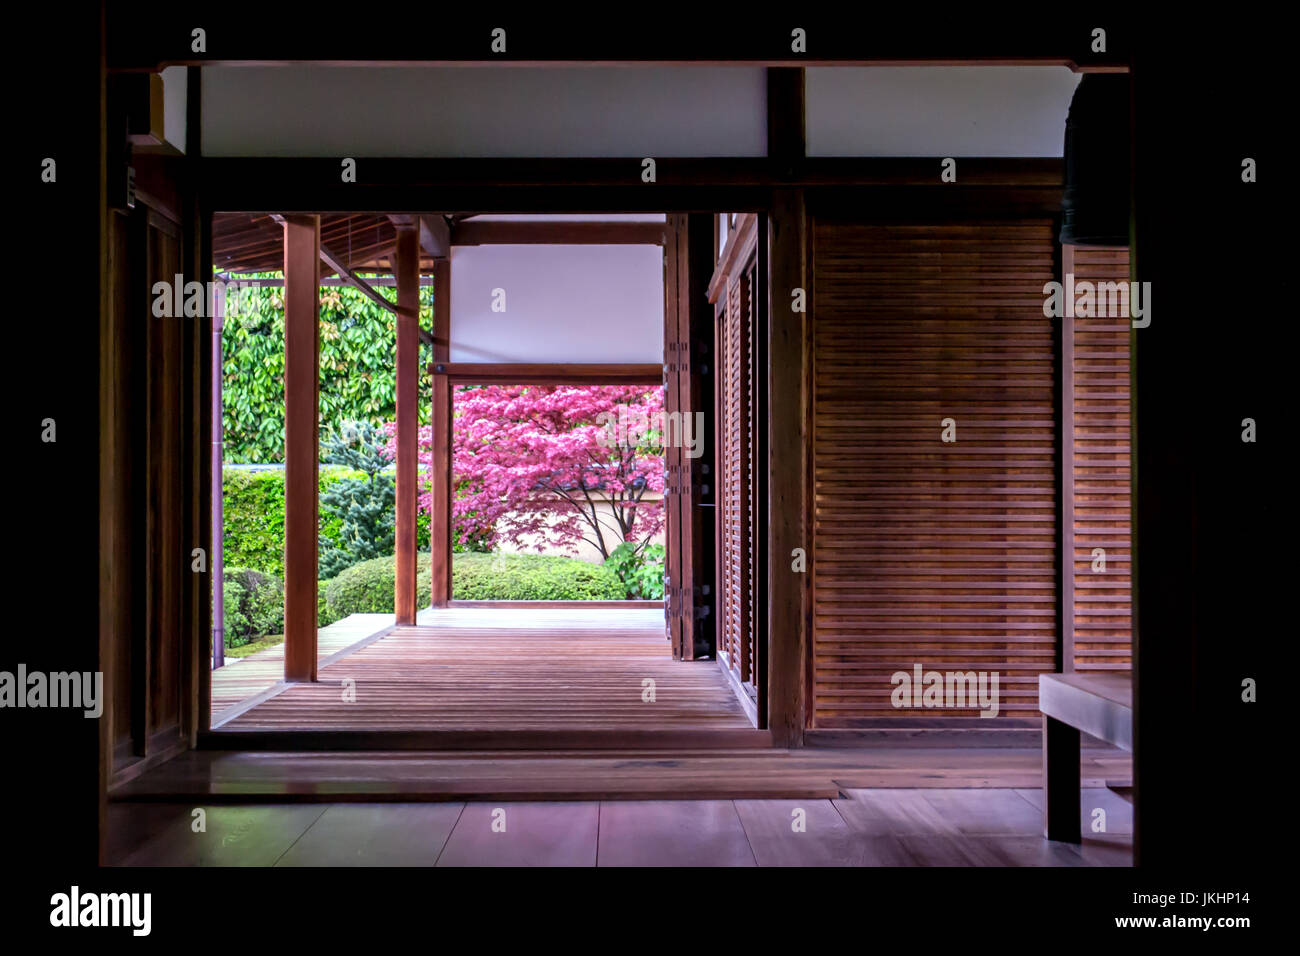 Kyoto Temple Interior - Stock Image